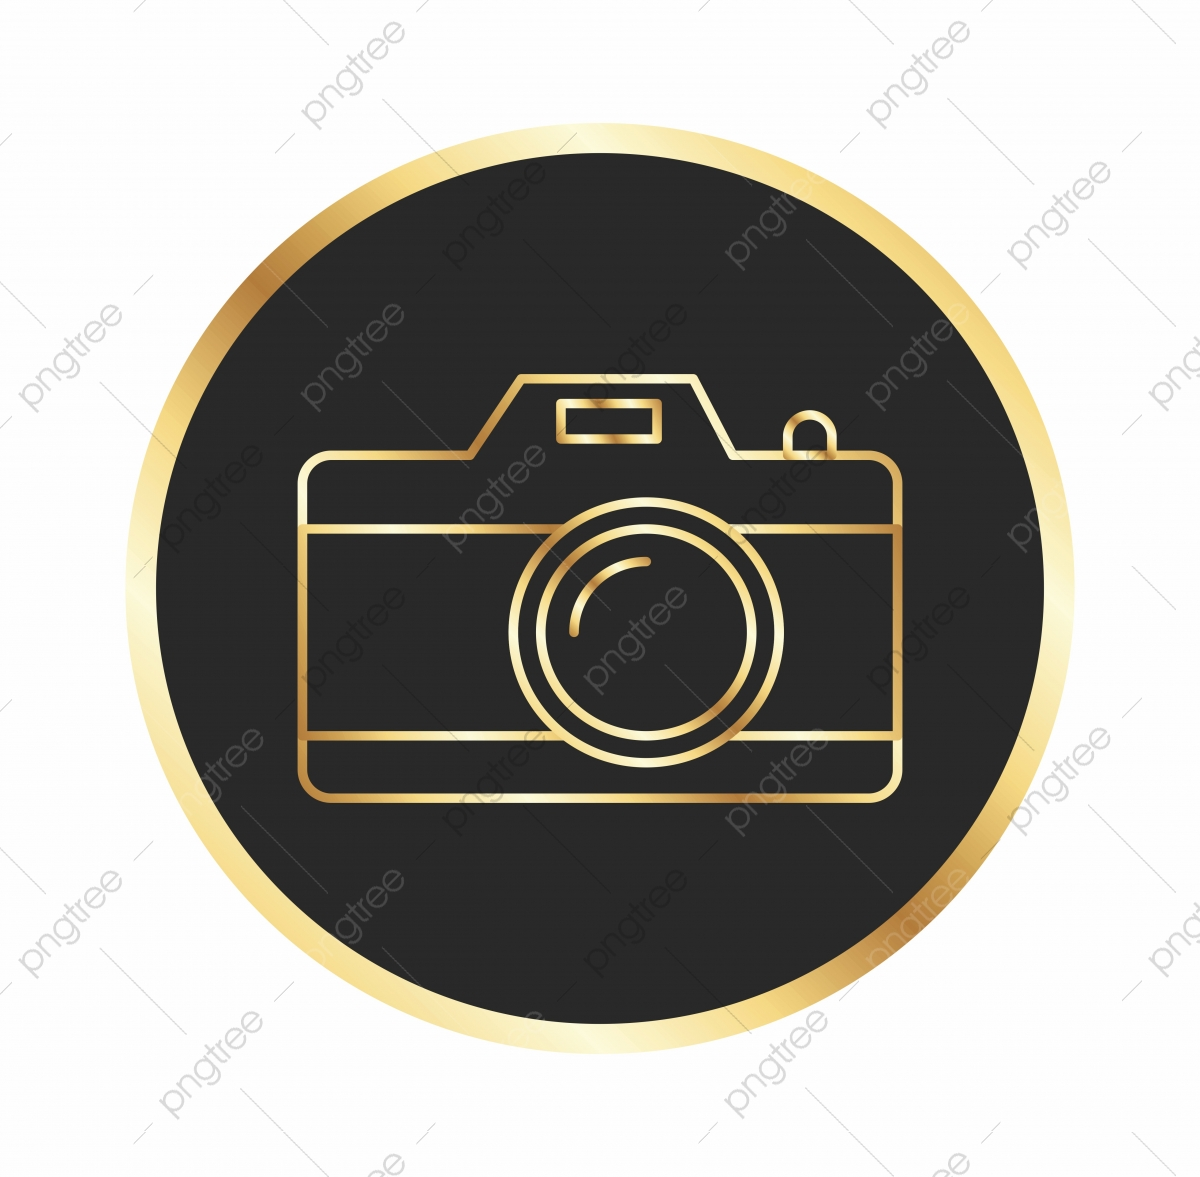 Camera Png Vector Psd And Clipart With Transparent Background For Free Download Pngtree